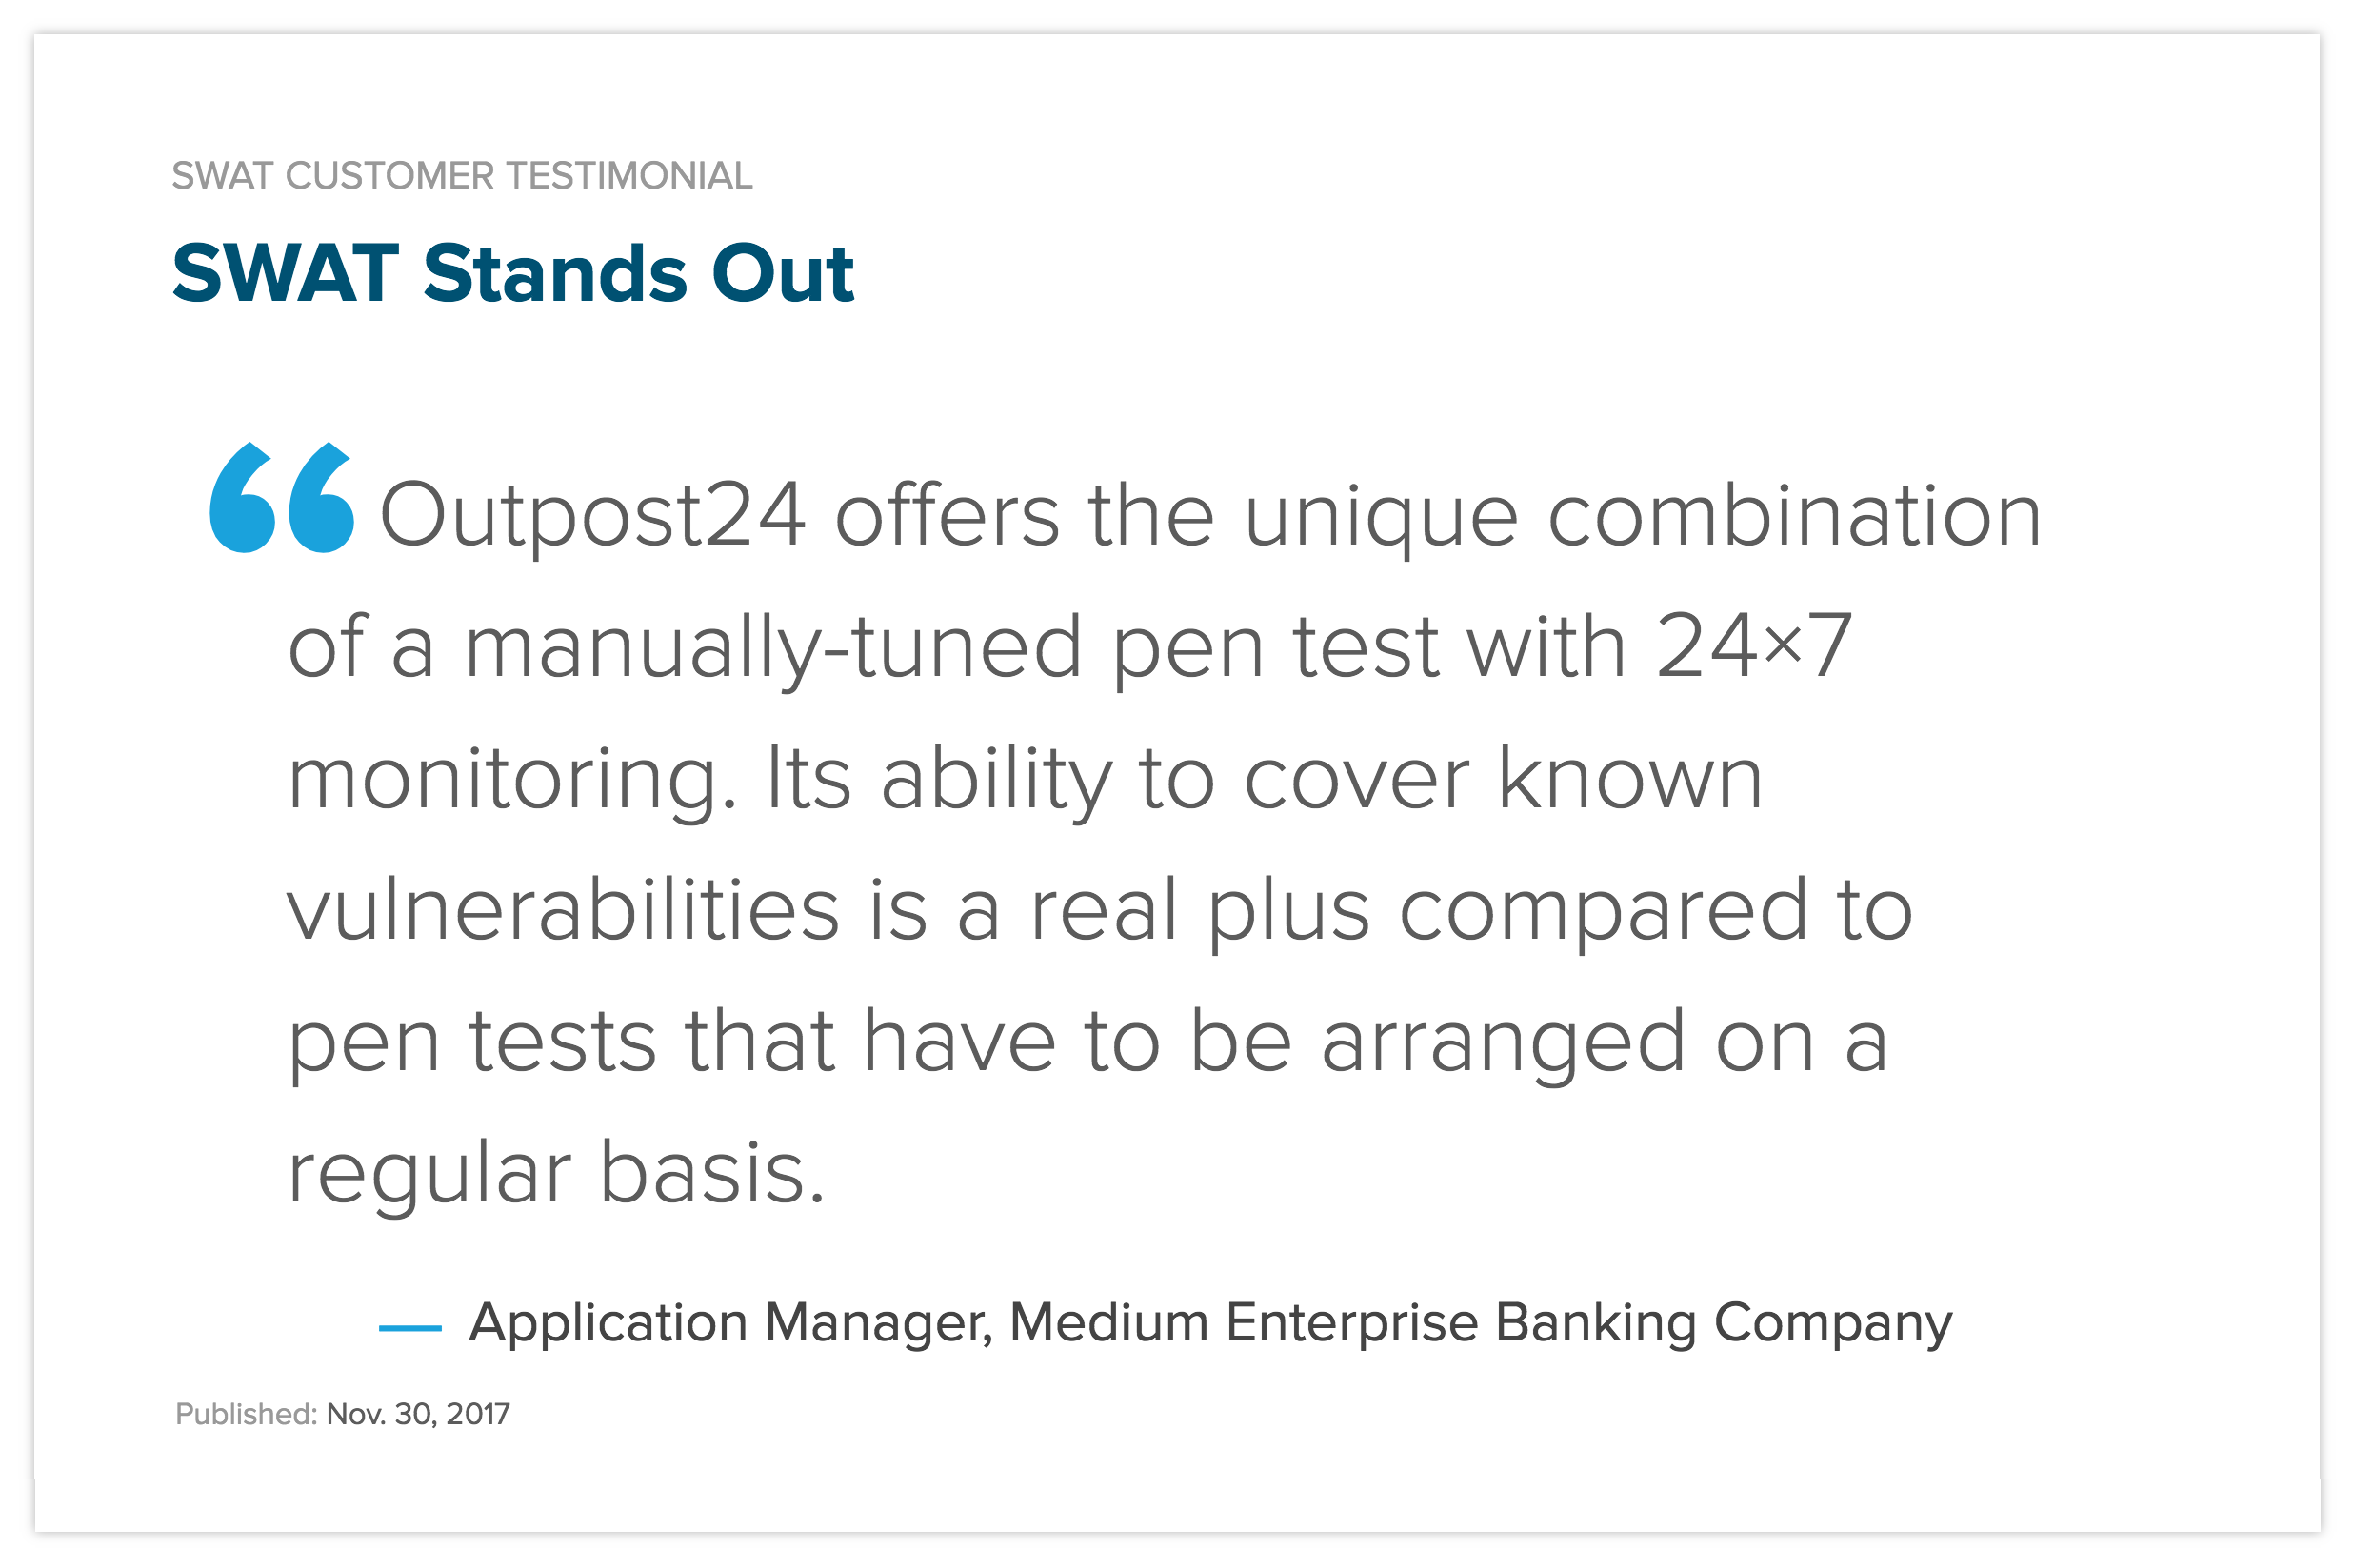 Outpost24 offers the unique combination of a manually-tuned pen test with 24x7 monitoring. Its ability to cover know vulnerabilities is a real plus compared to pen test that have to be arranged on a regular basis